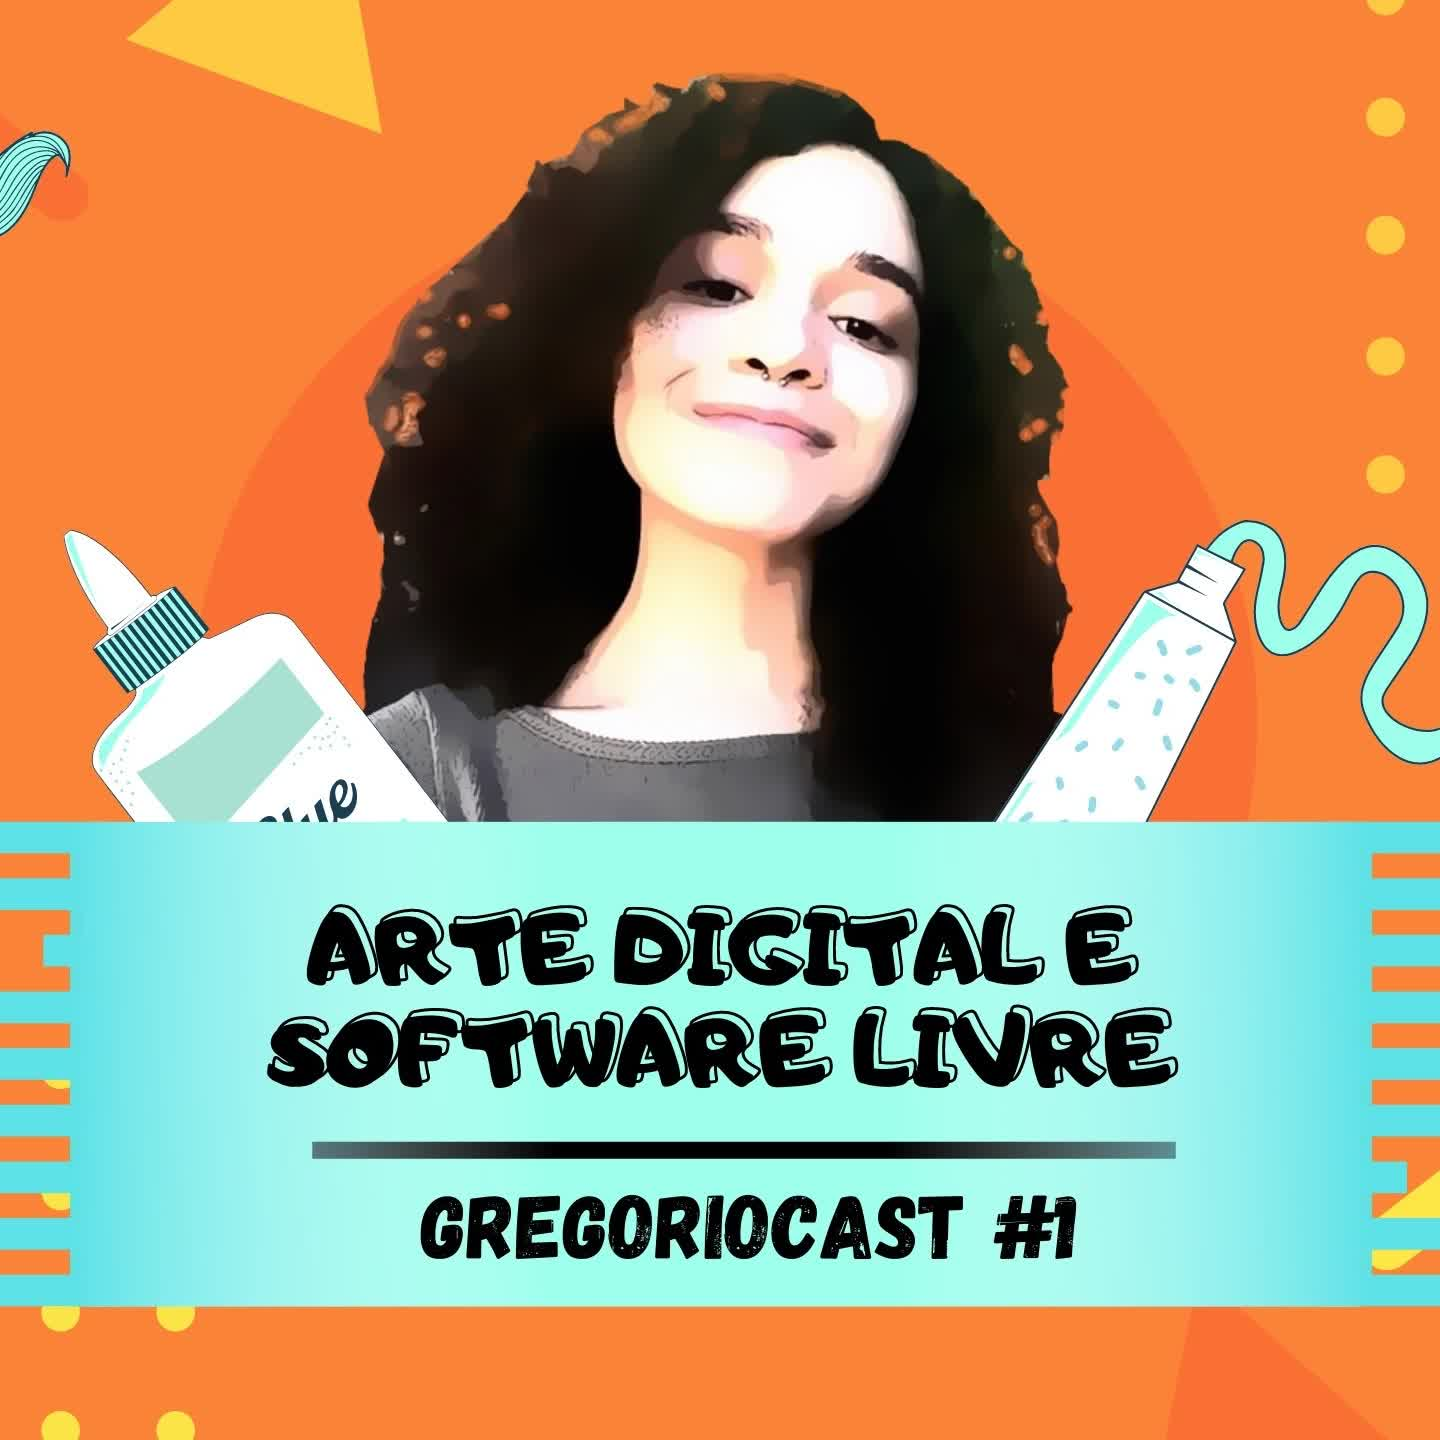 GregorioCast #1 - Arte Digital  e Software Livre